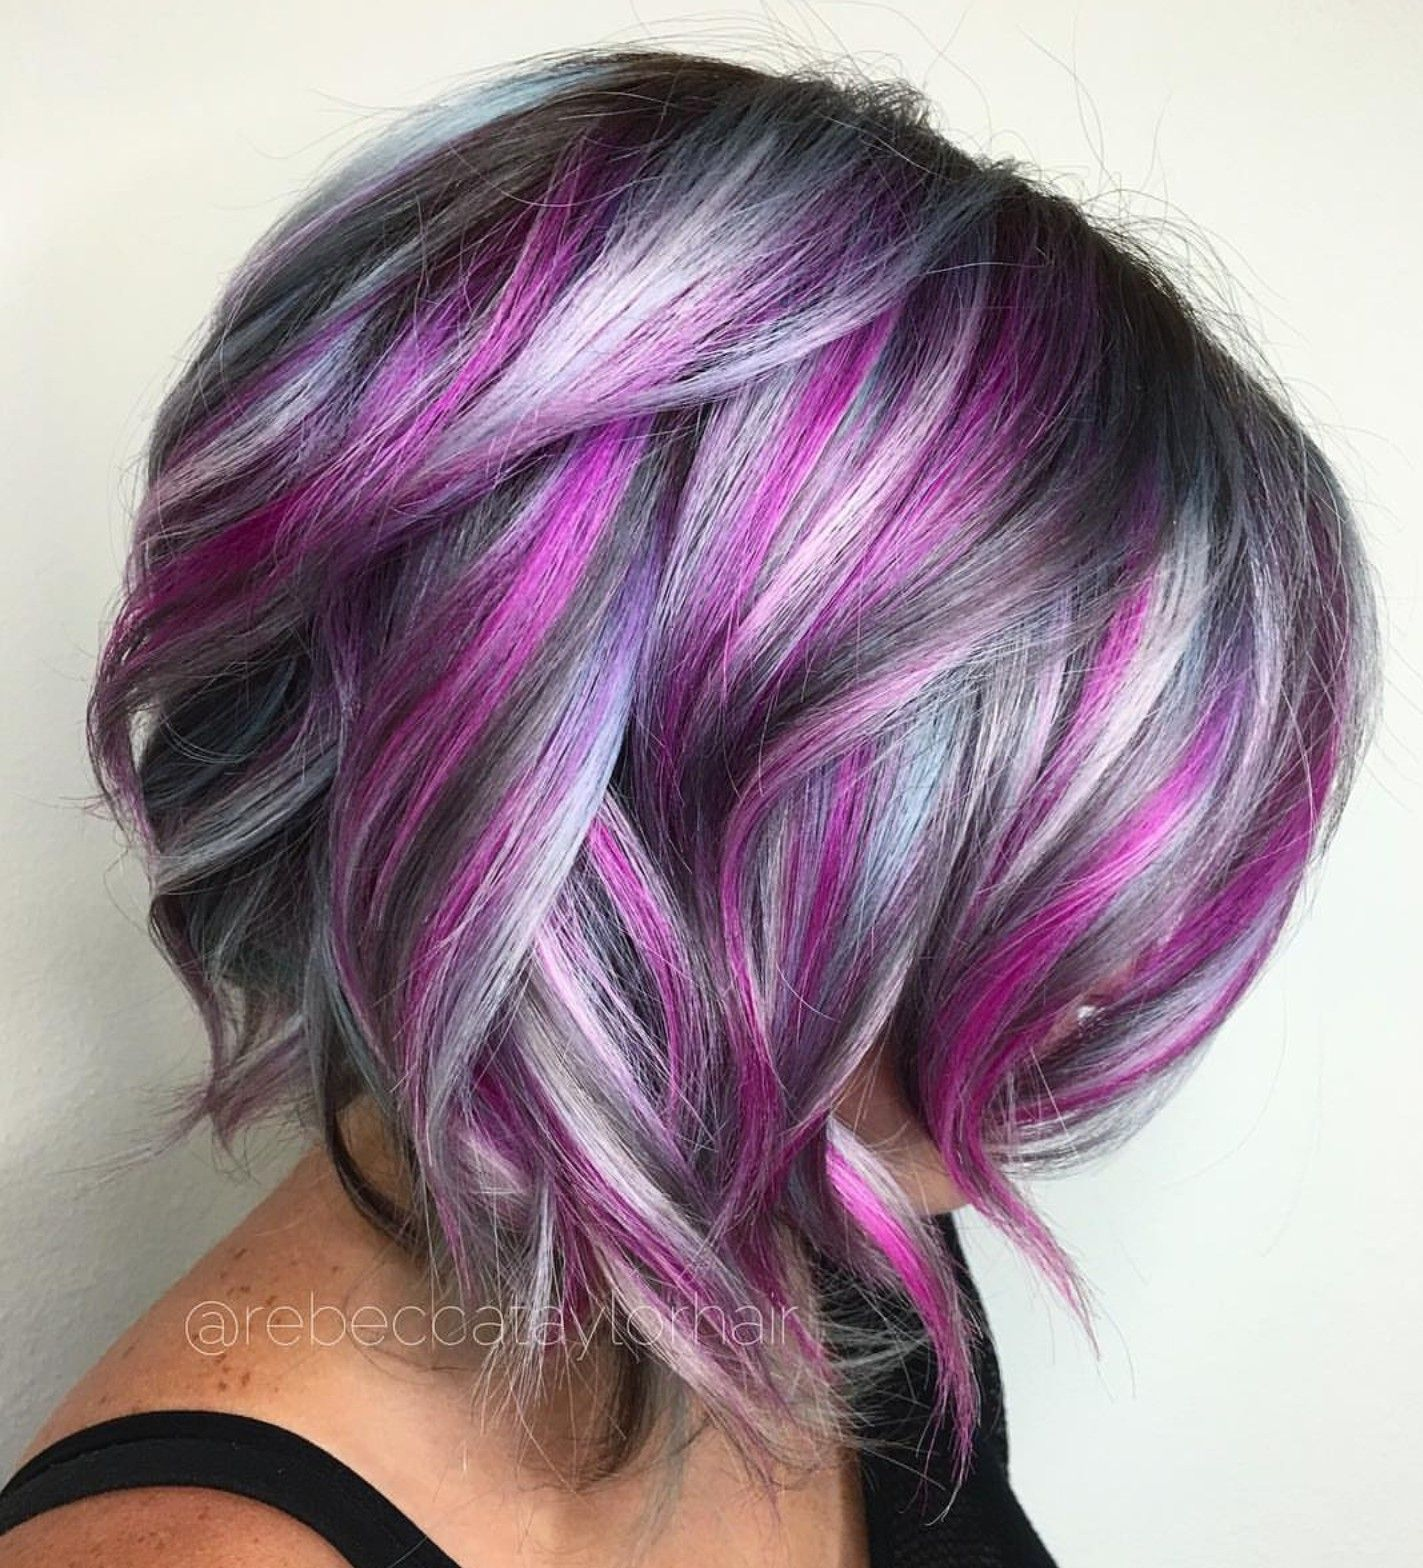 Pin by Melissa Buckmaster on Hair Pinterest